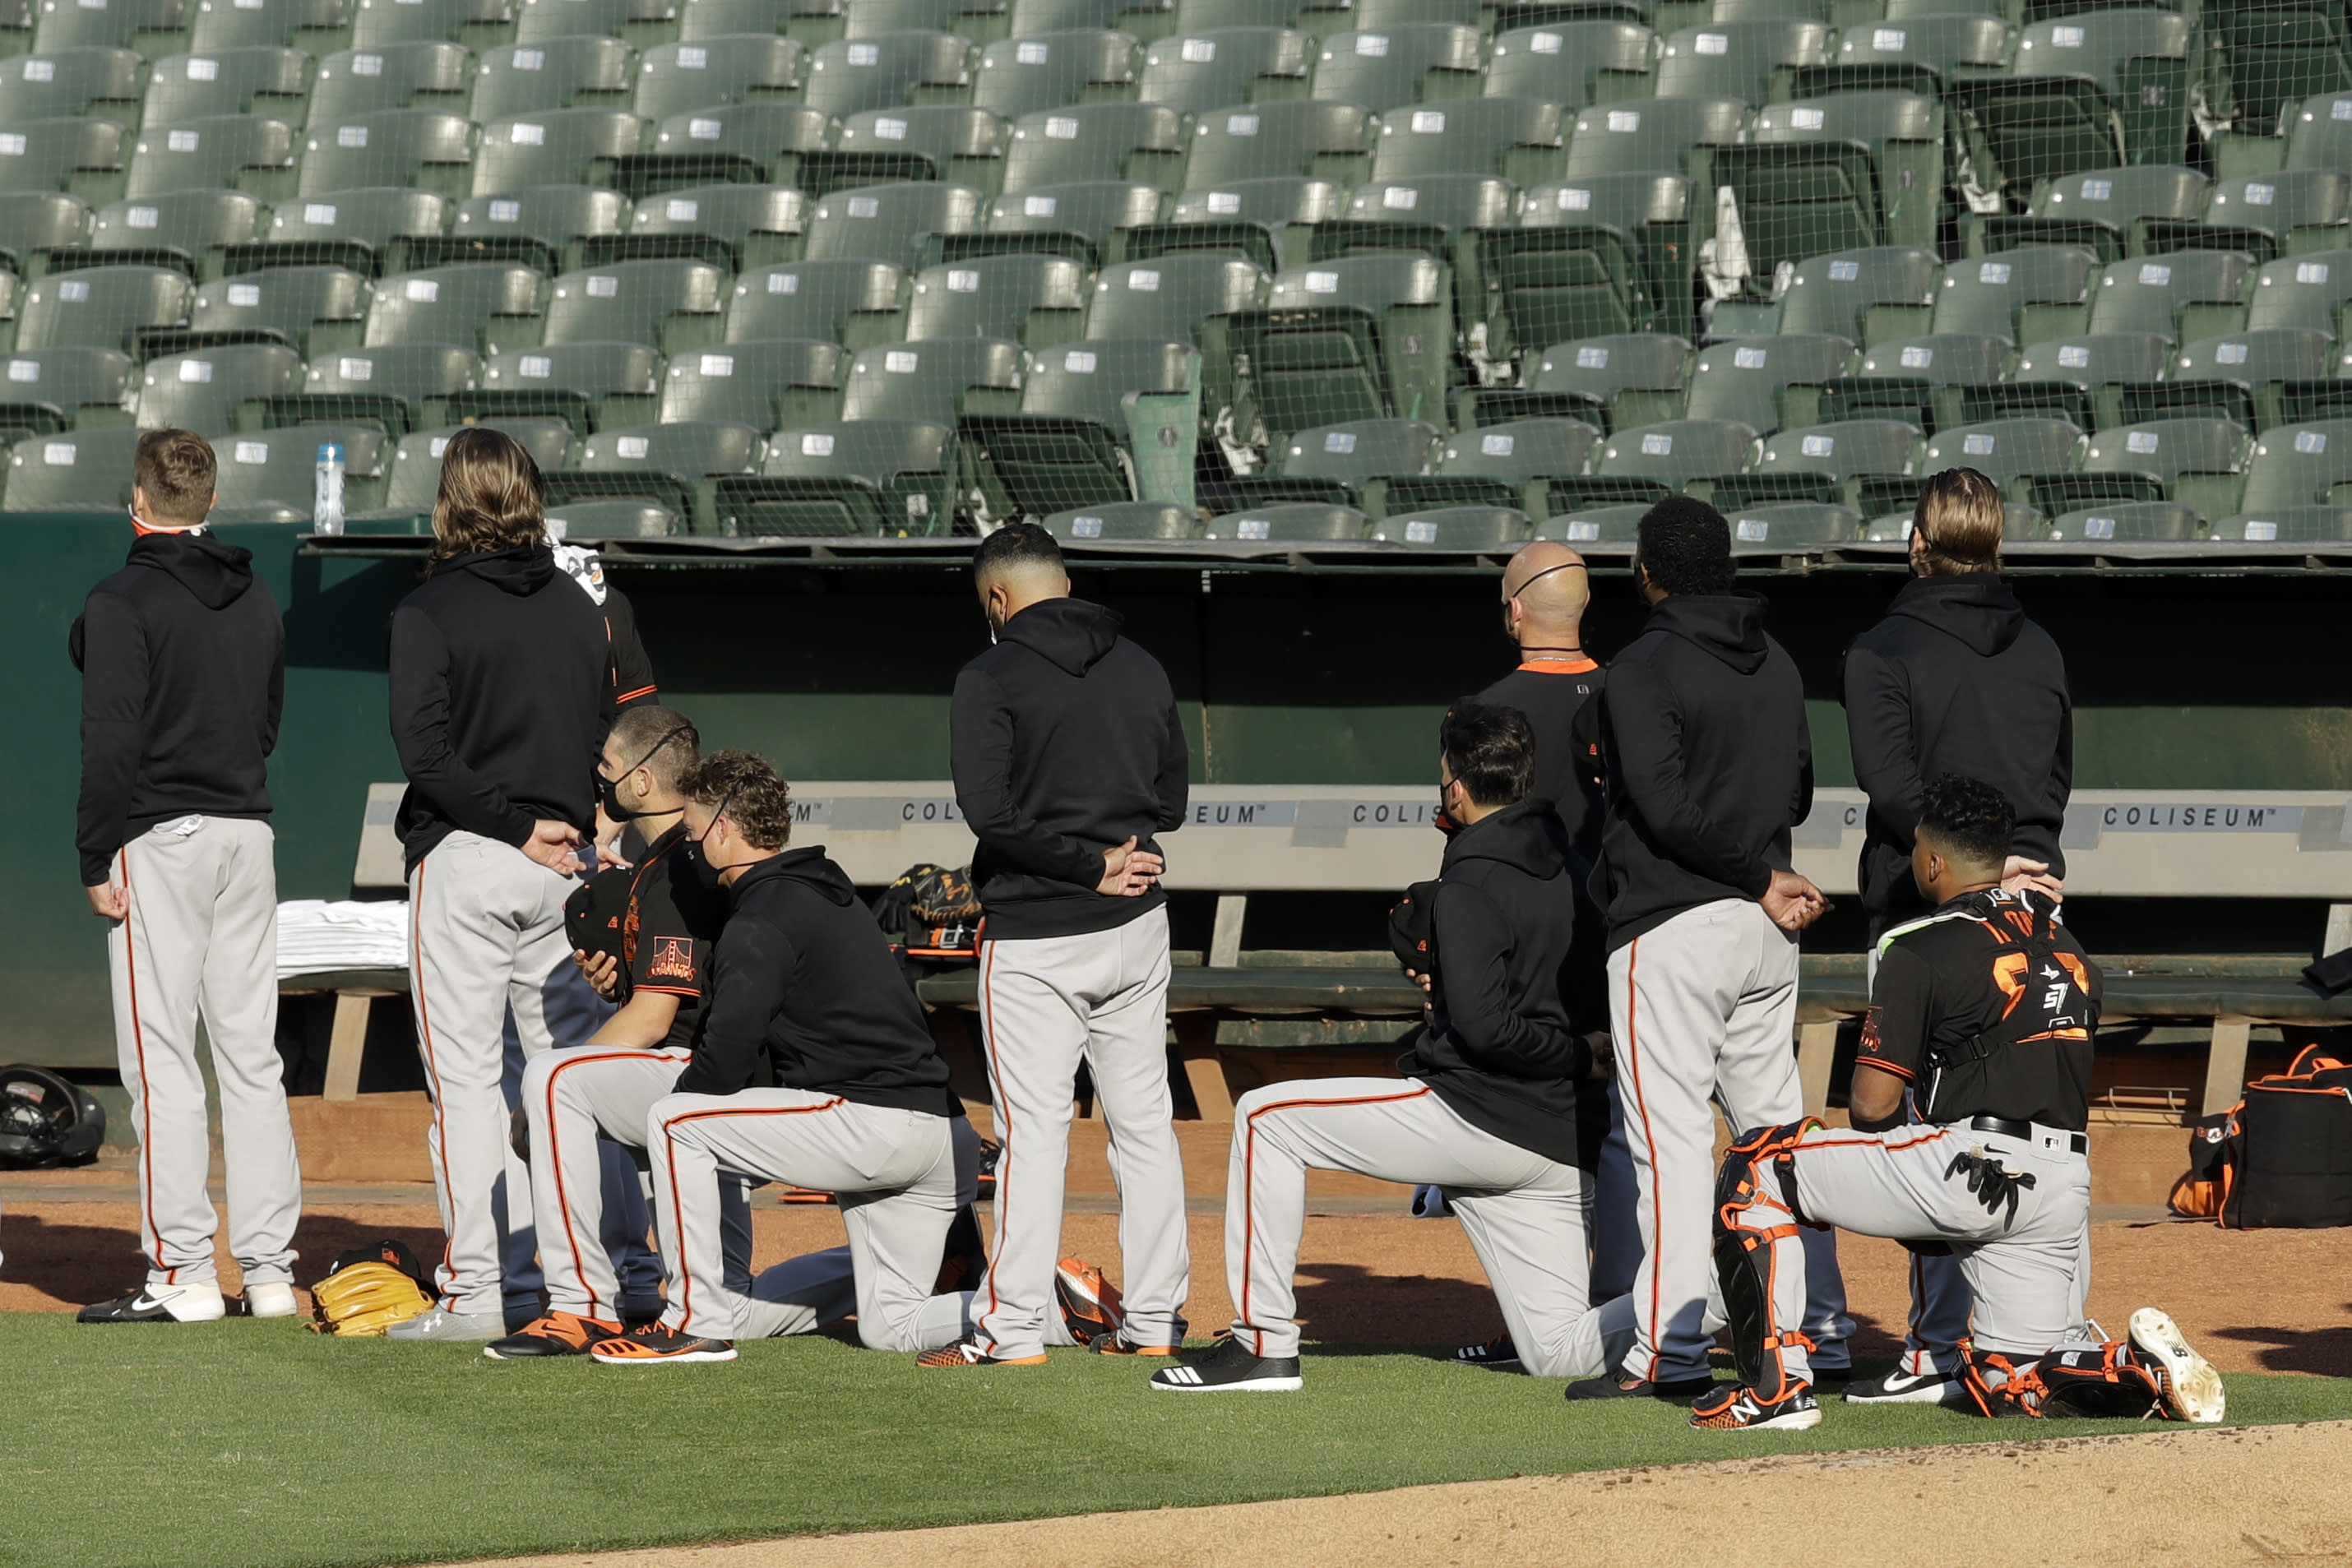 Some San Francisco Giants kneel during the national anthem prior to an exhibition baseball game against the Oakland Athletics on Monday, July 20, 2020, in Oakland, Calif. (AP Photo/Ben Margot)